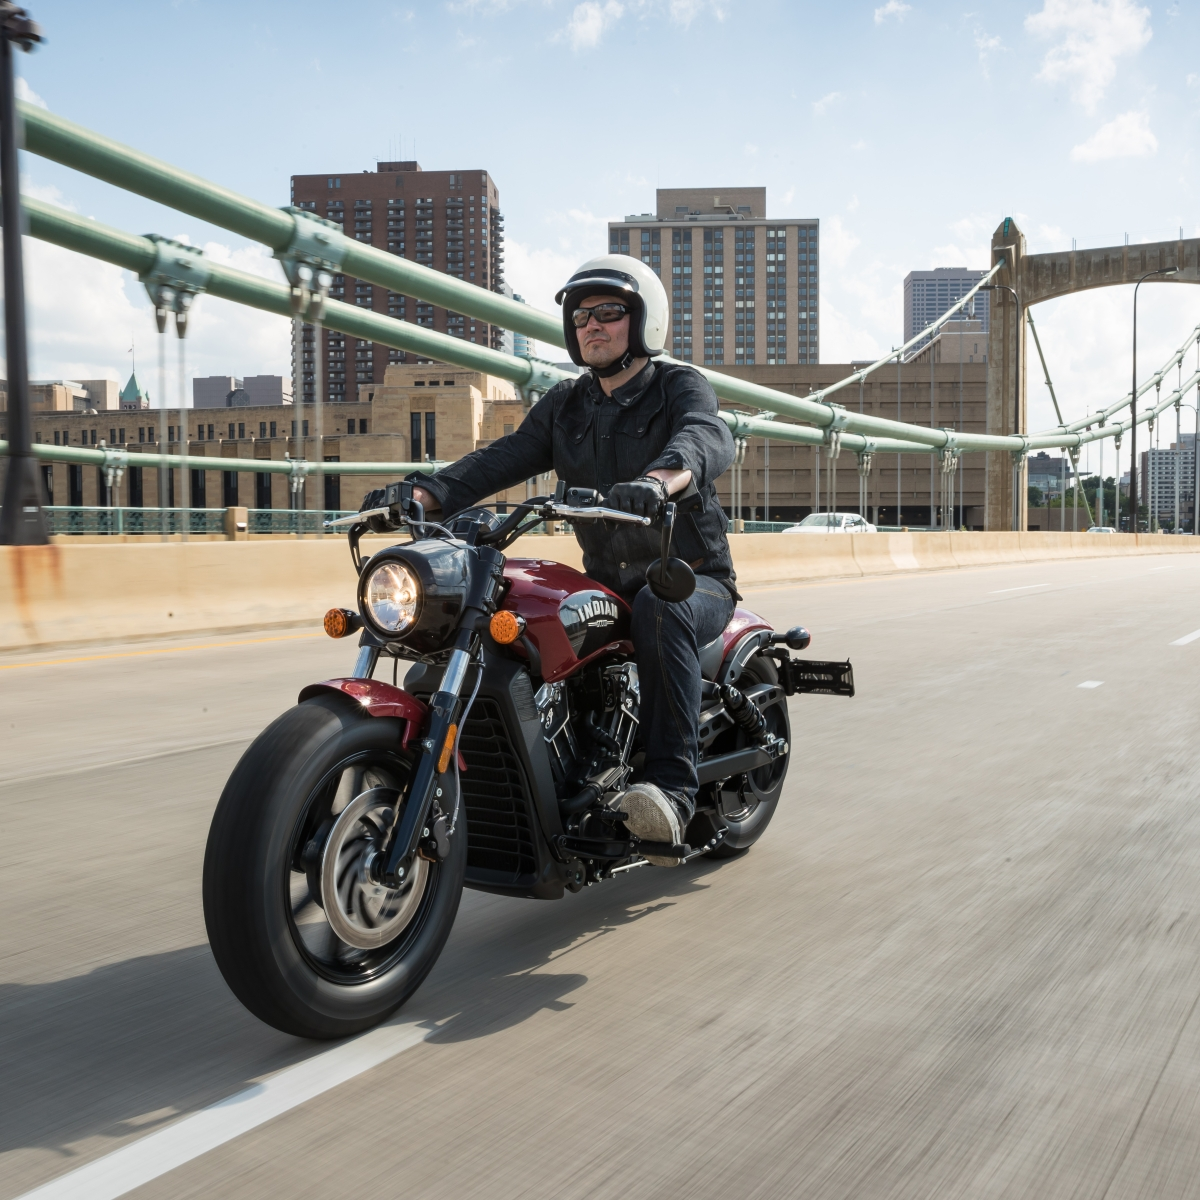 100 Miles on the 2018 Indian Scout Bobber Motorcycle - Men's